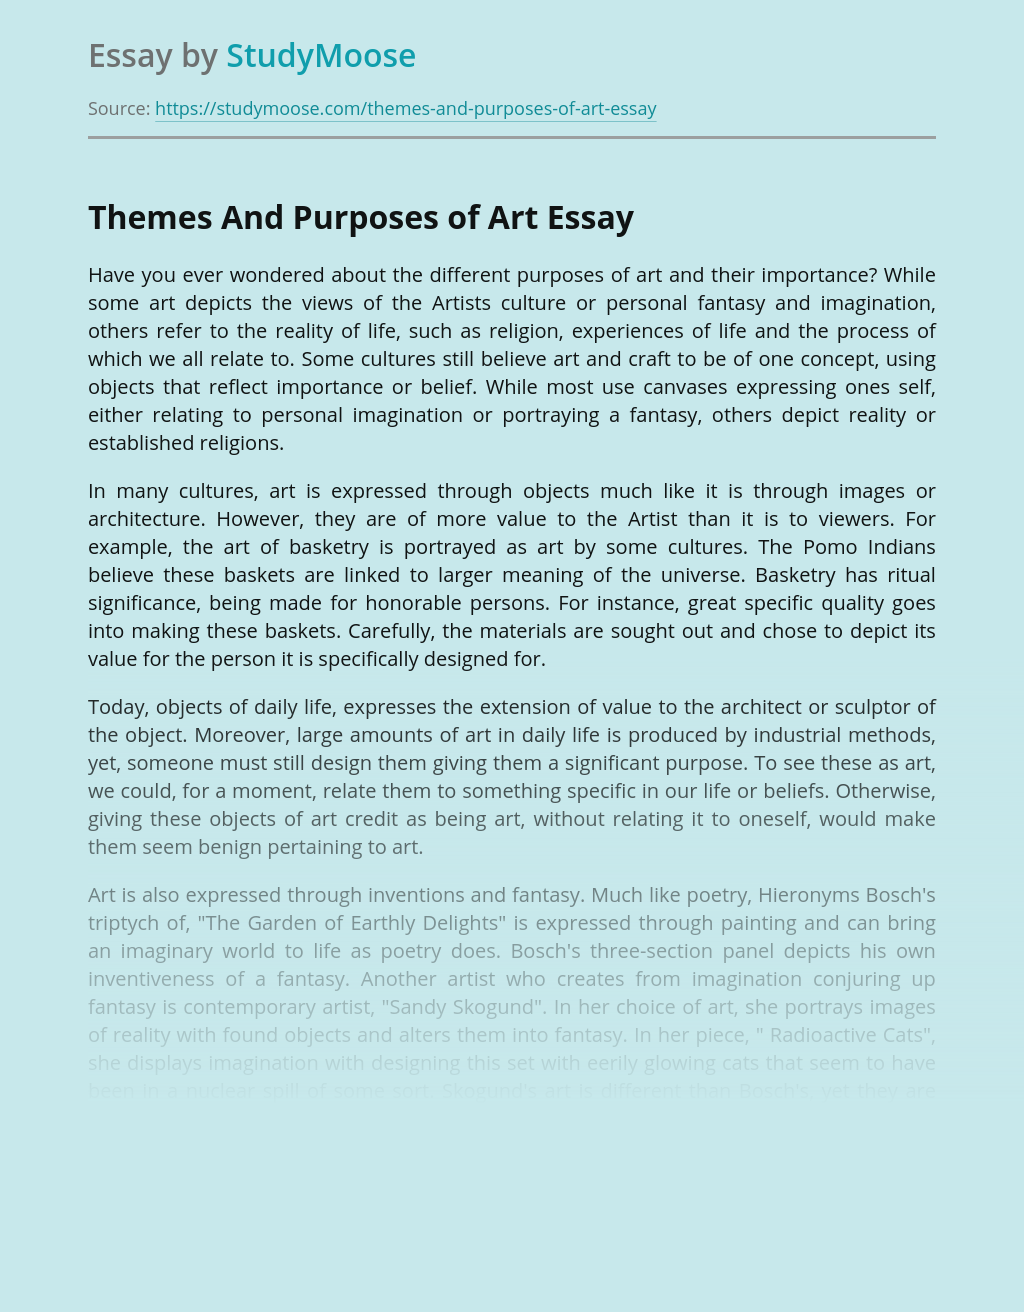 Themes And Purposes of Art